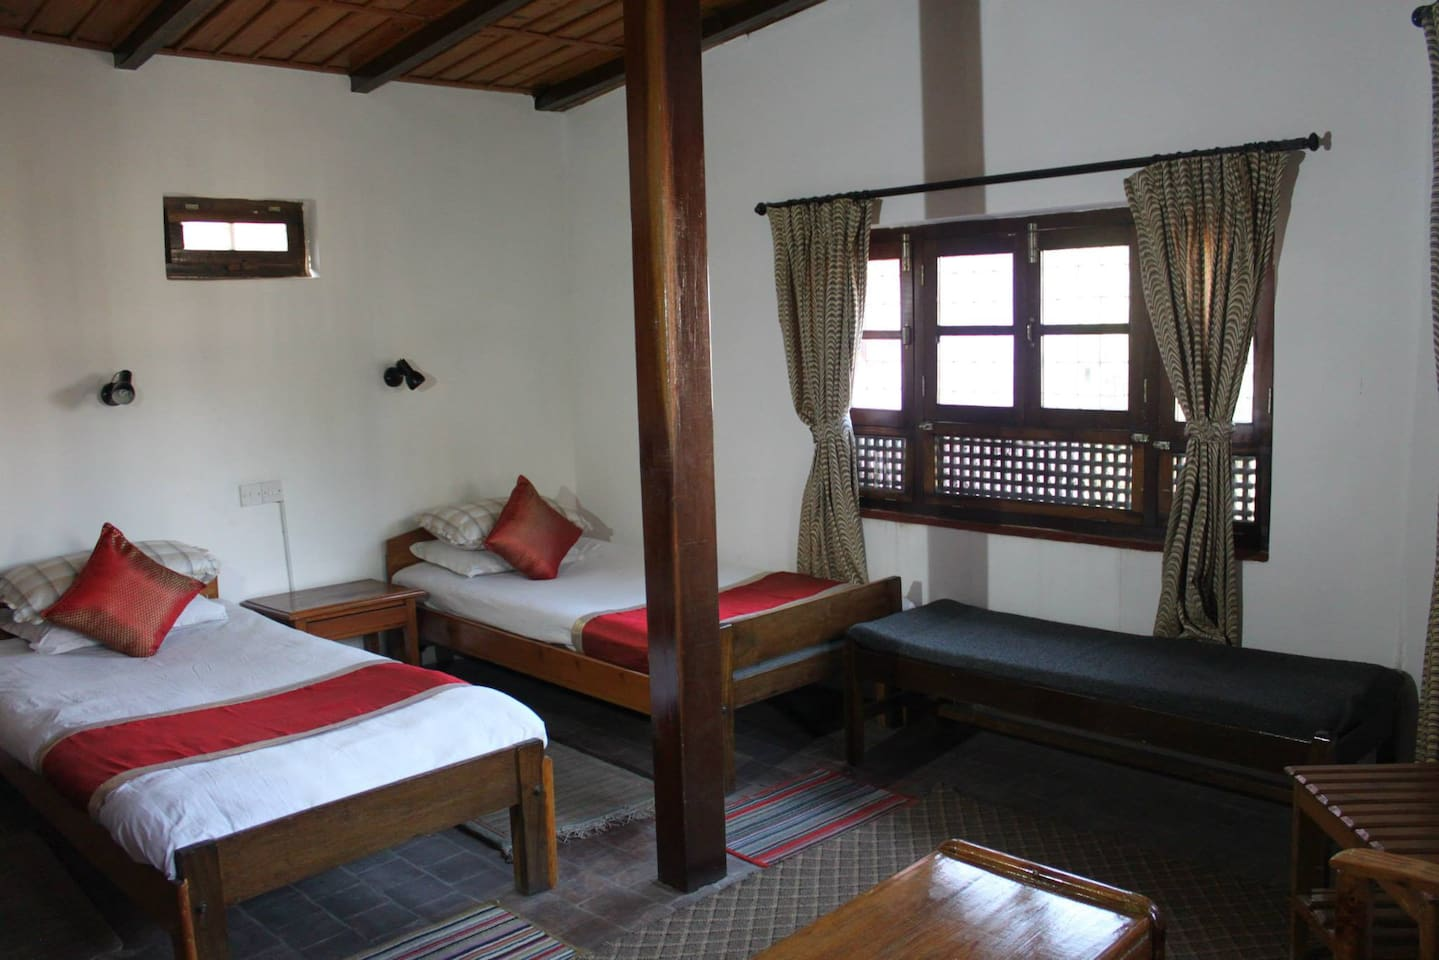 A twin room: a room with two beds for two guests and windows with garden views